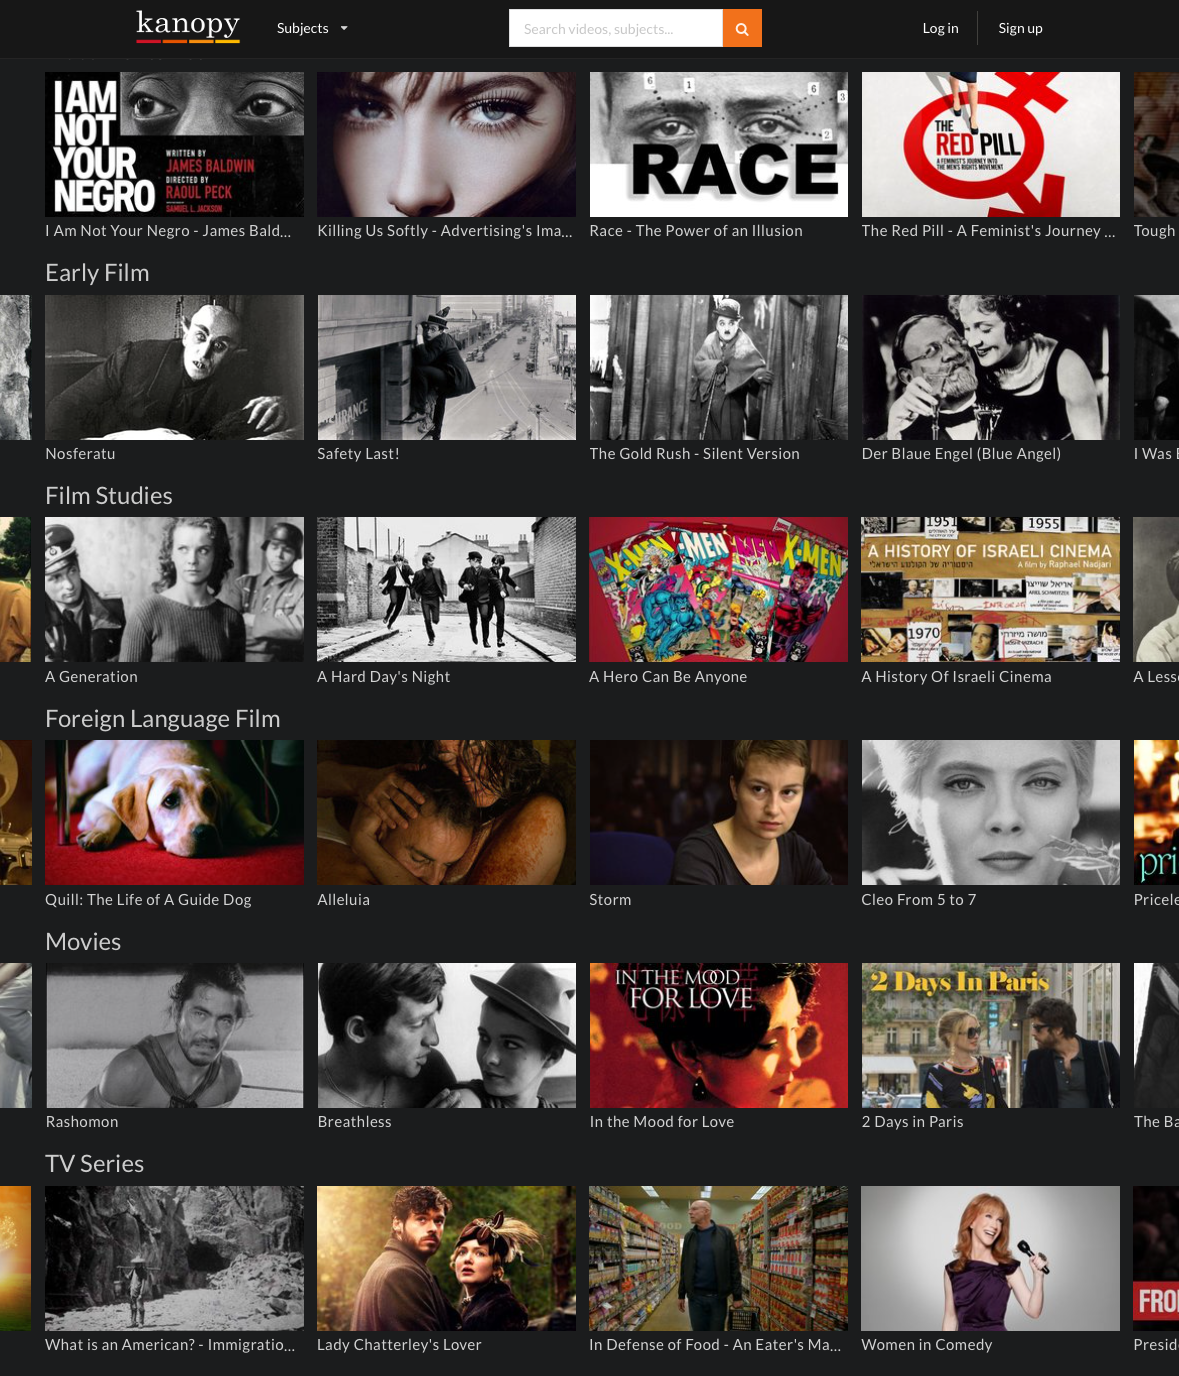 20 Streaming Services That Aren't Netflix, Hulu, or Amazon